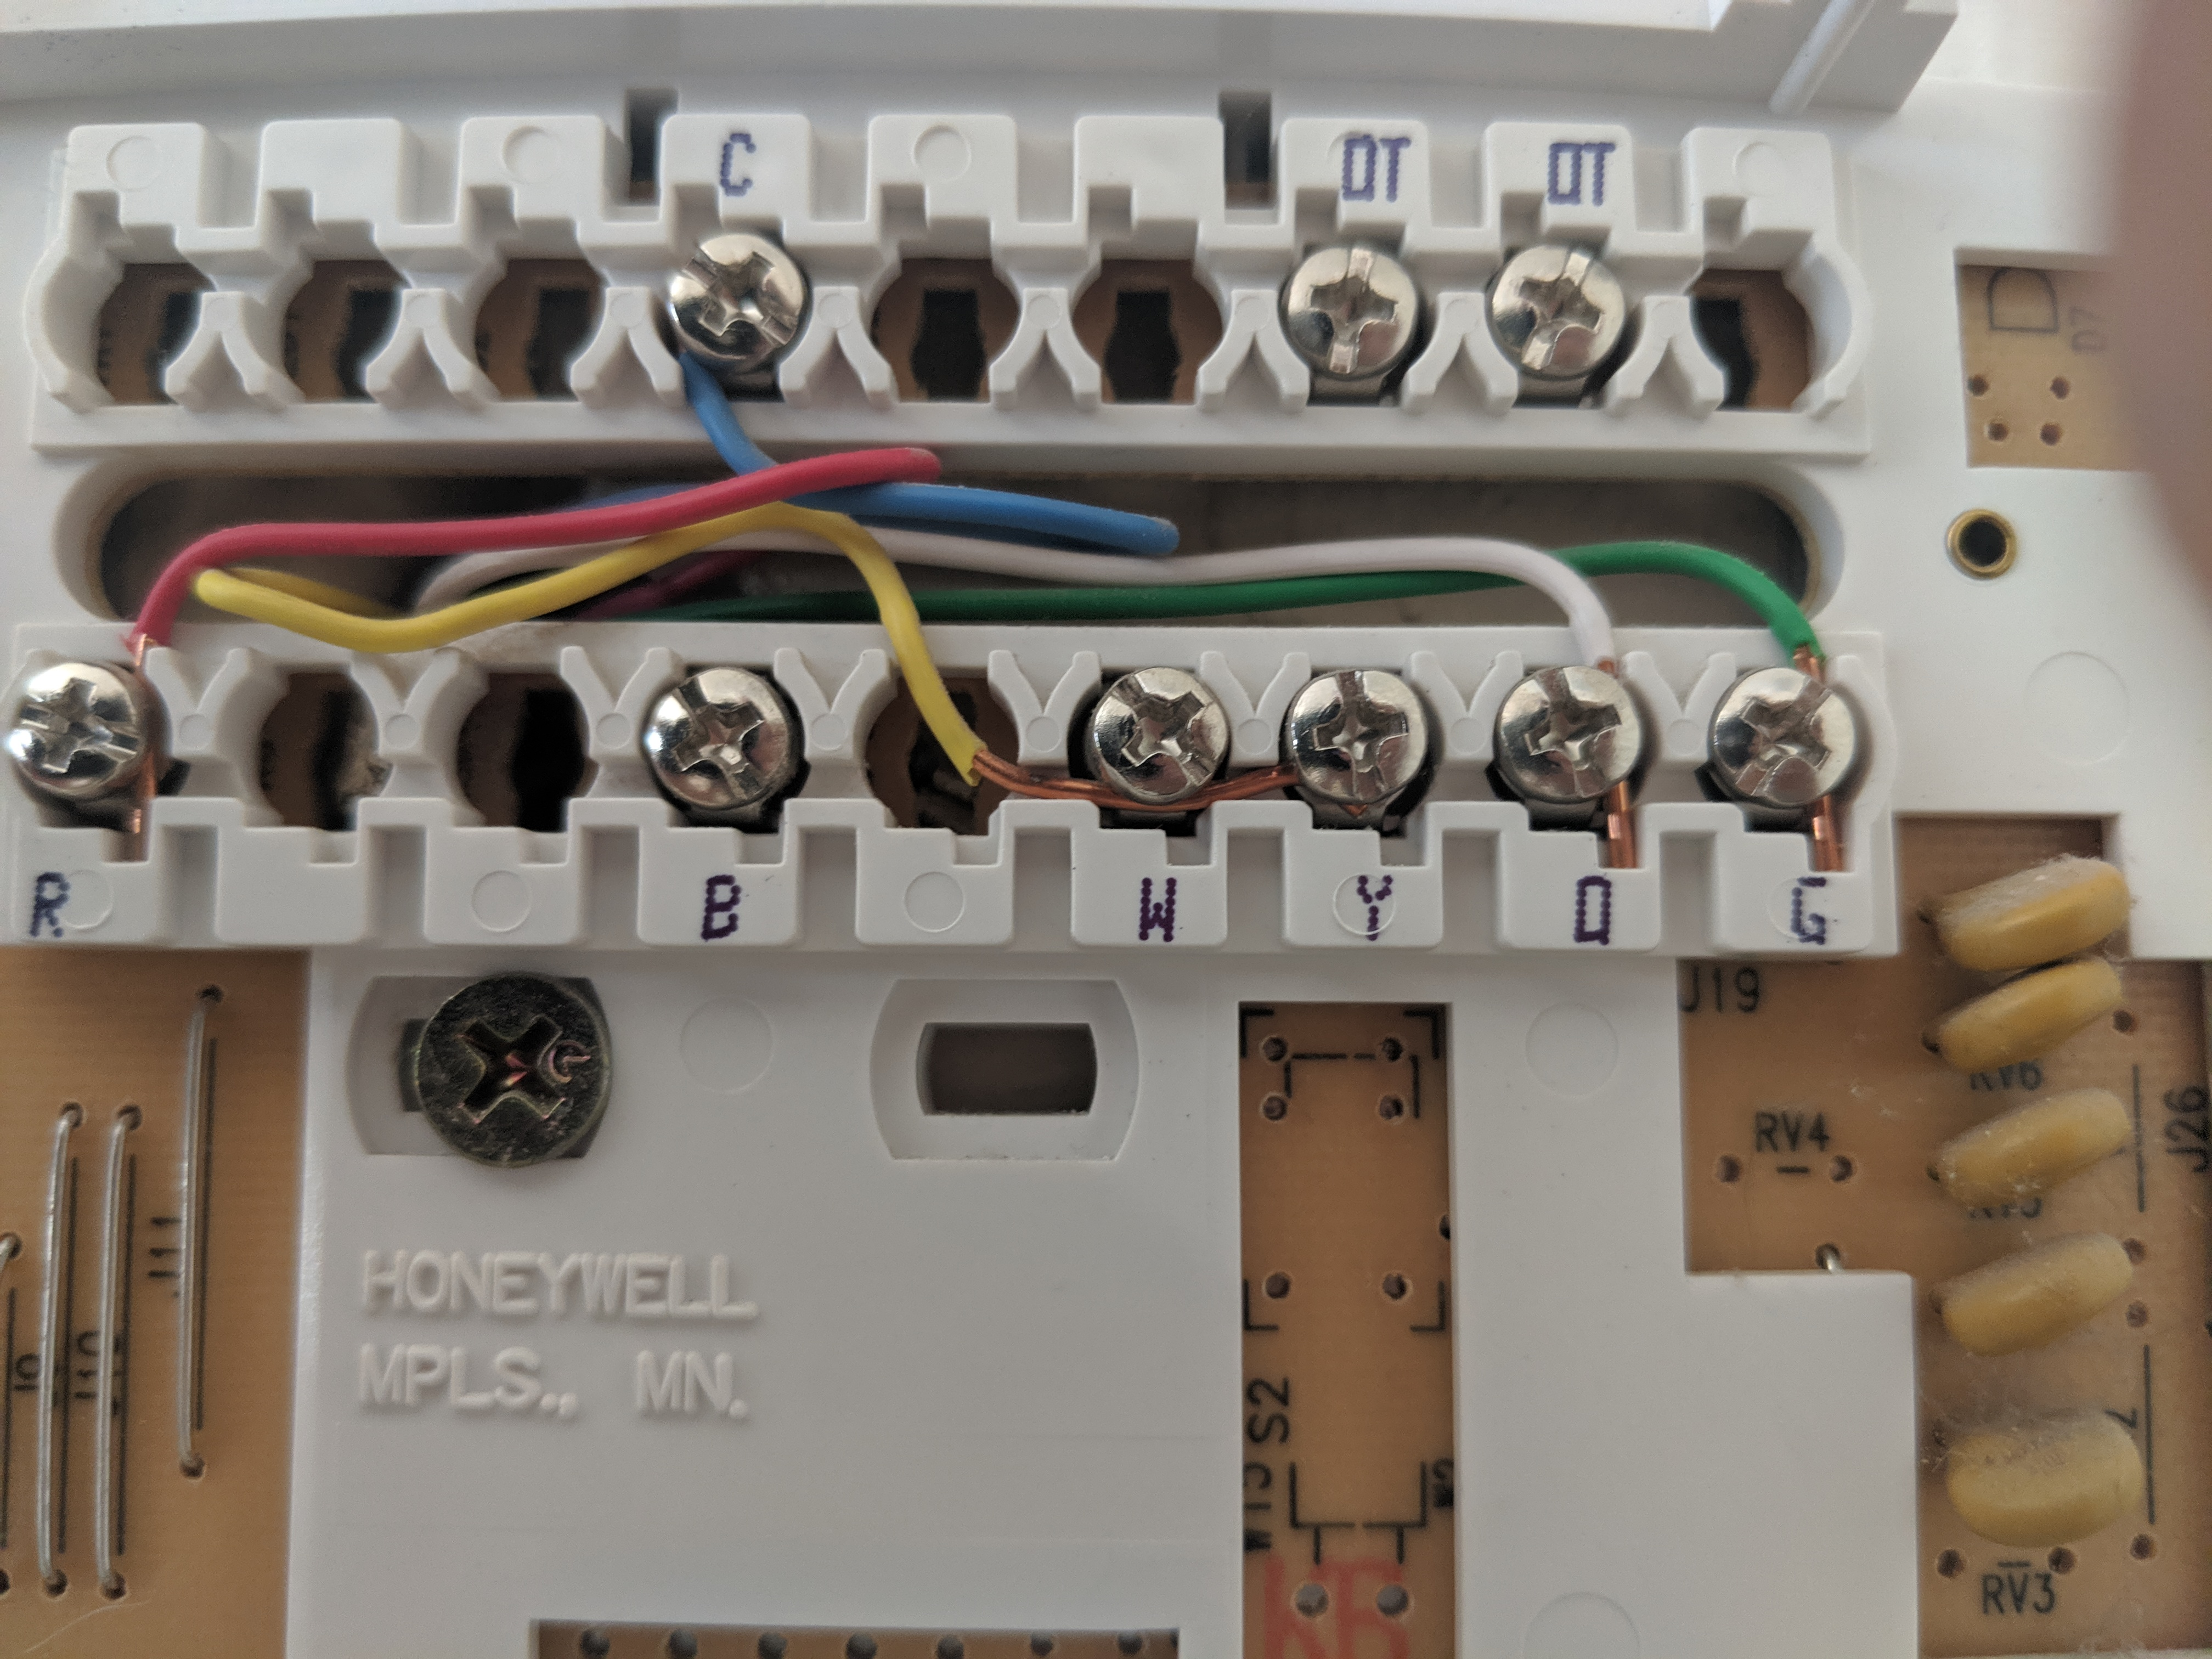 Wiring Diagram For Nest 2 Thermostat With Heat Pump